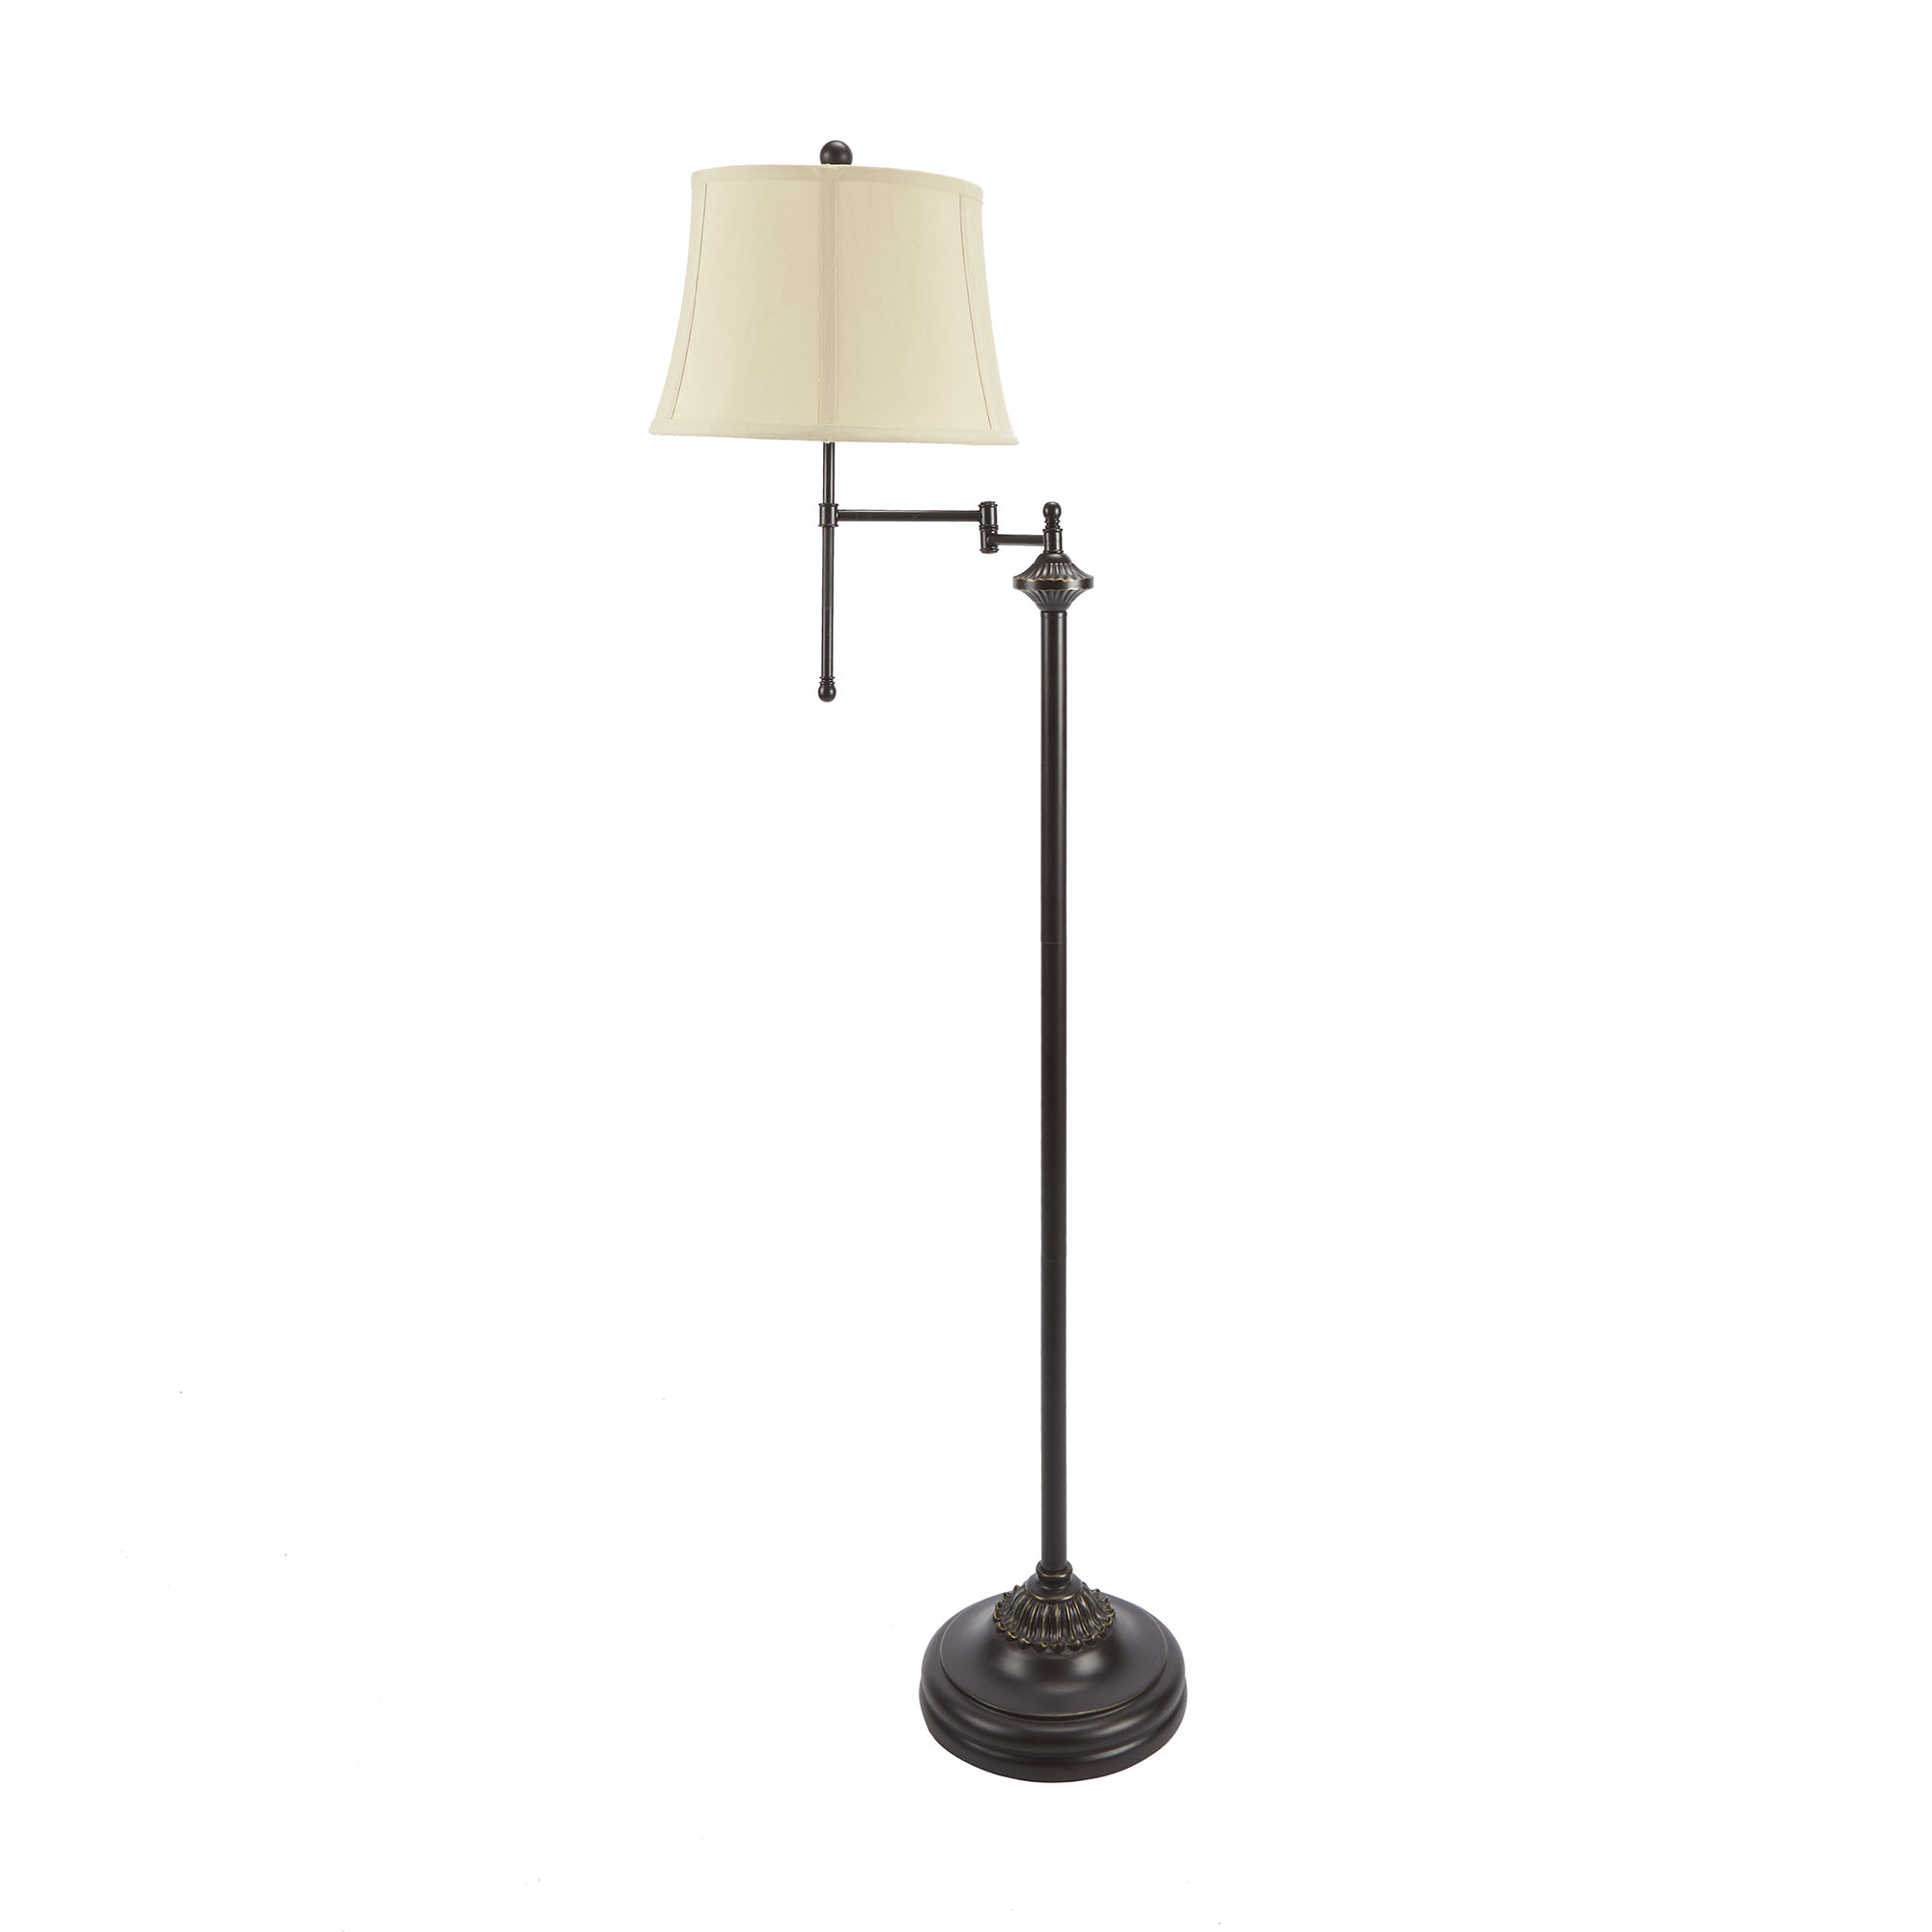 Better Homes Gardens 59 Swing Arm Floor Lamp CFL Bulb Included